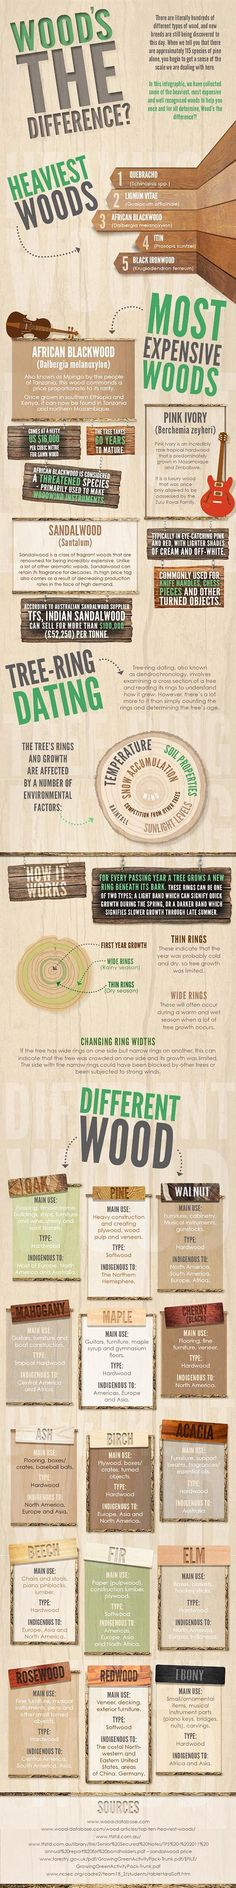 Infographic: Wood's The Difference?